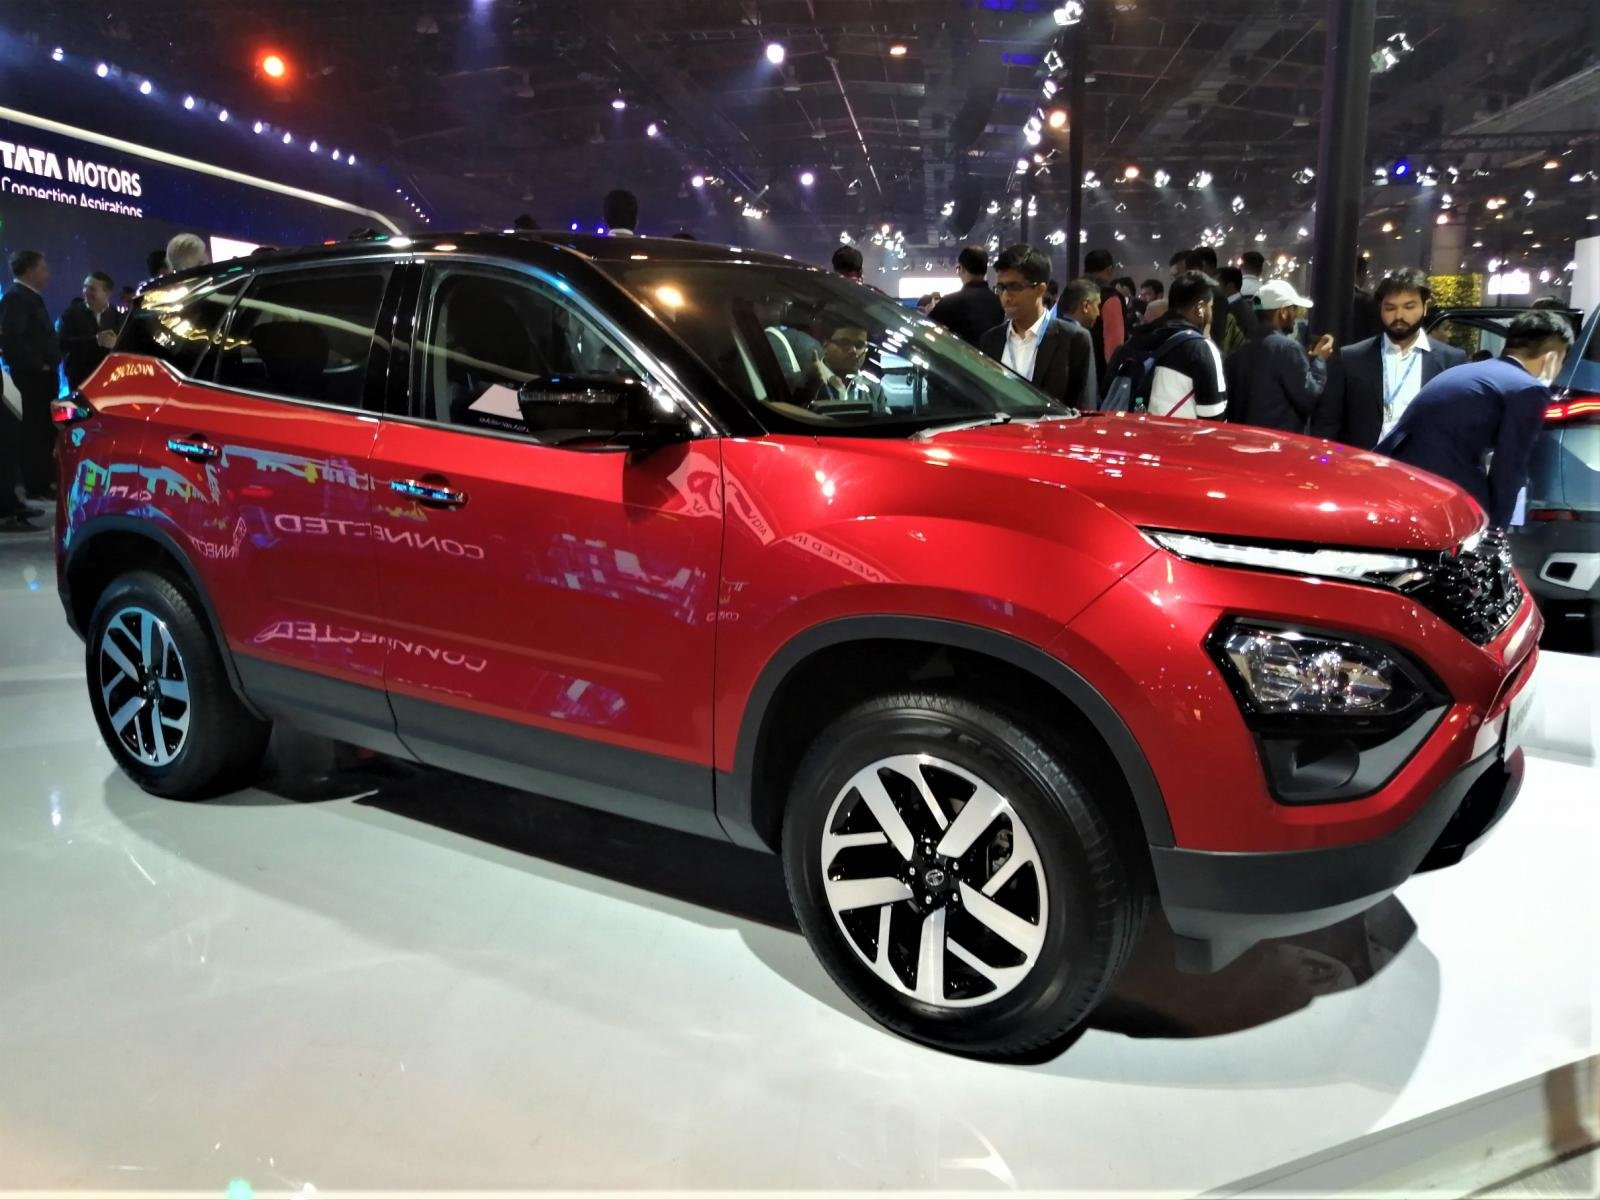 Big SUVs' like Tata Harrier and MG Hector at the Top of Wish List of Millennial Car Buyers